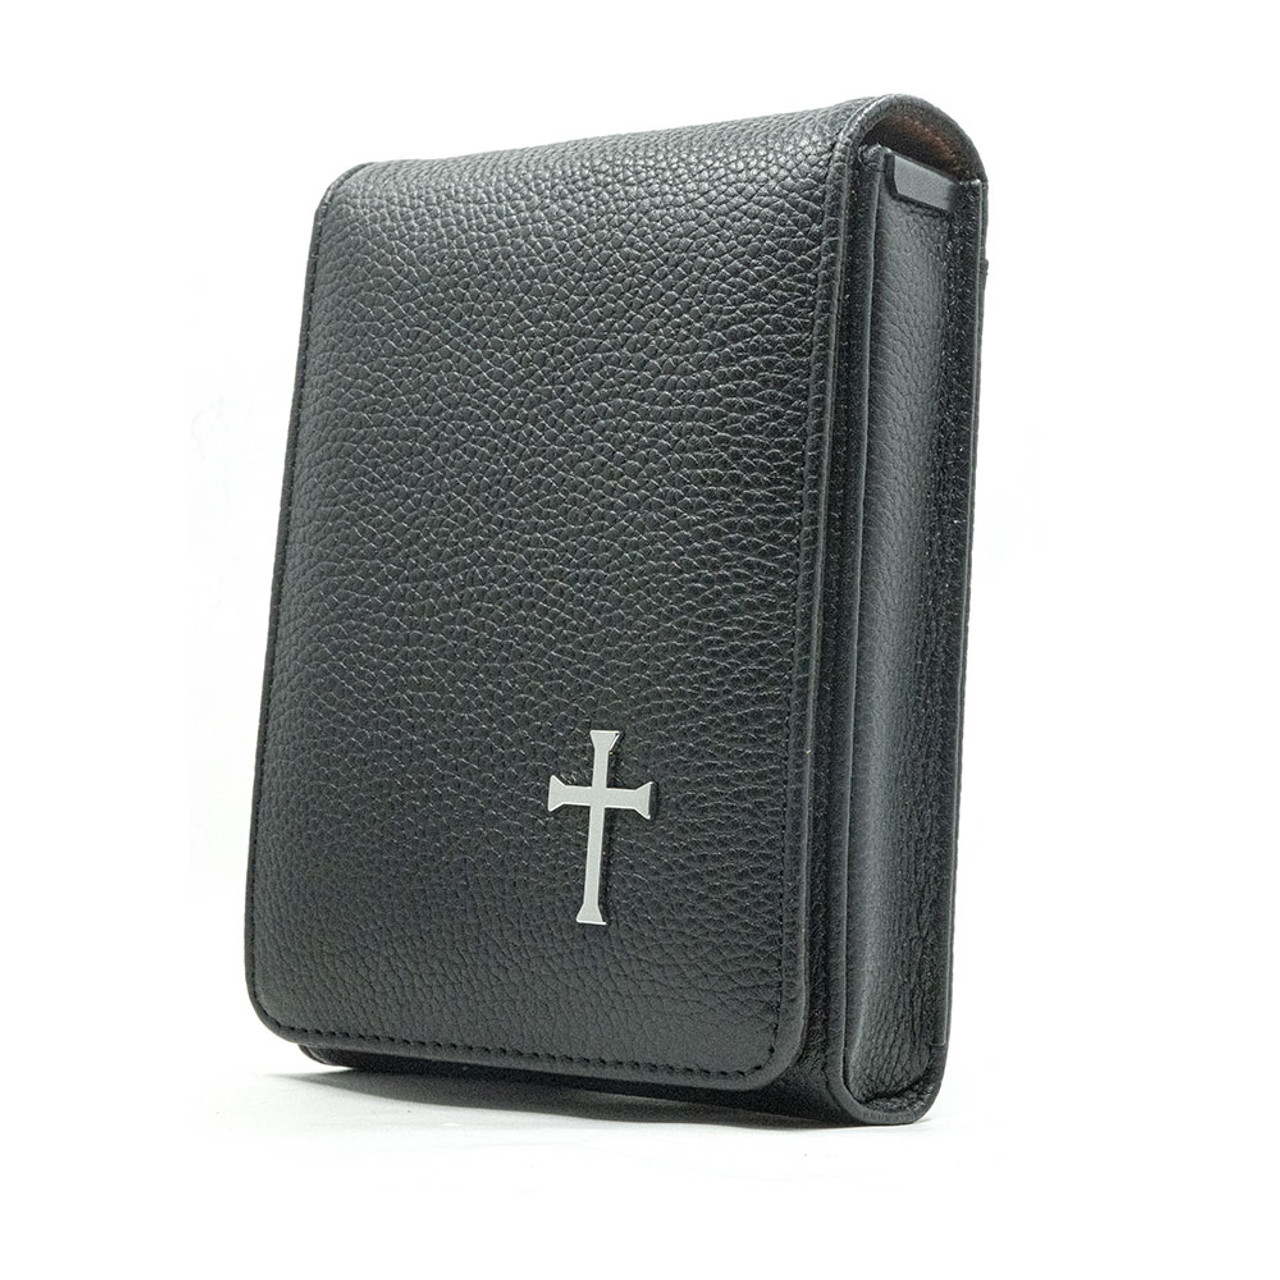 Walther PPK/S Black Leather Cross Series Holster